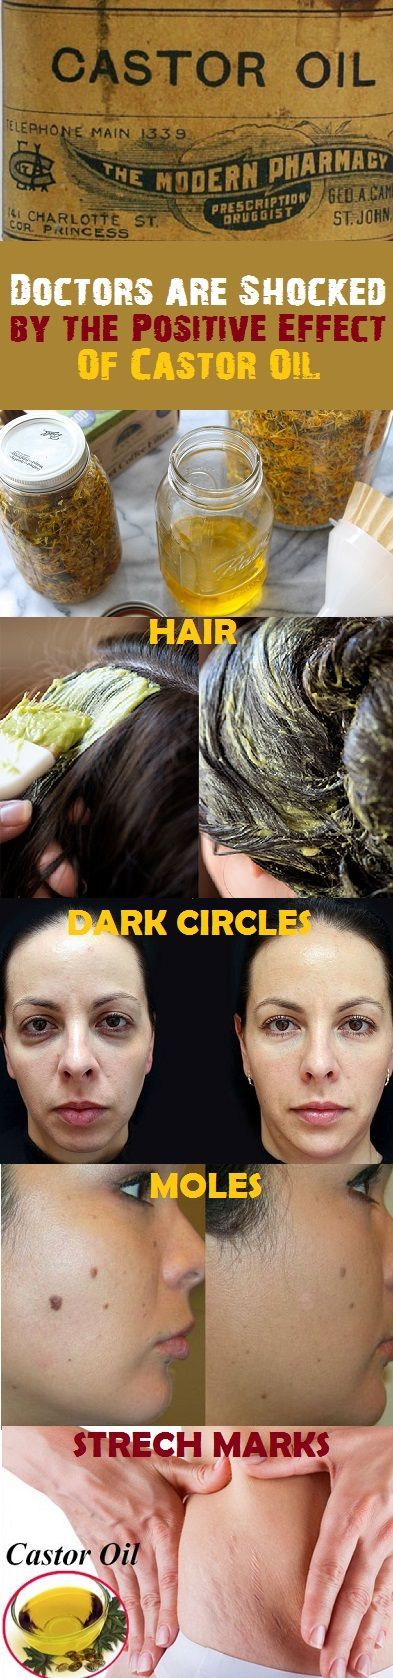 Doctors are Shocked by the Positive Effect of Castor Oil and Baking Soda! More than 20 Health Issues Can be Treated with This Incredible Combination!